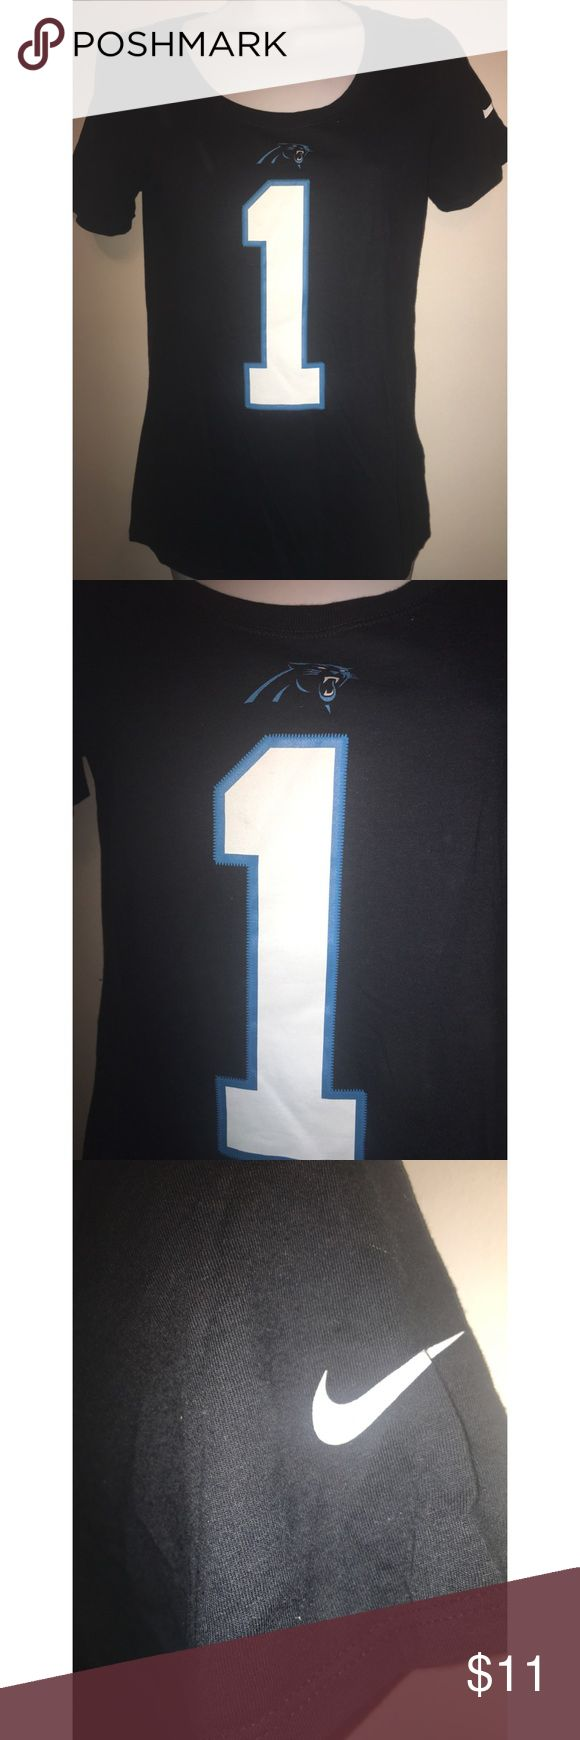 small Nike T shirt Athletic cut Carolina panthers small The Nike tee Athletic cut Cam Newton  Carolina panthers NFL This shirt is approximately 17 inches across and 25 inches long Nike Tops Tees - Short Sleeve